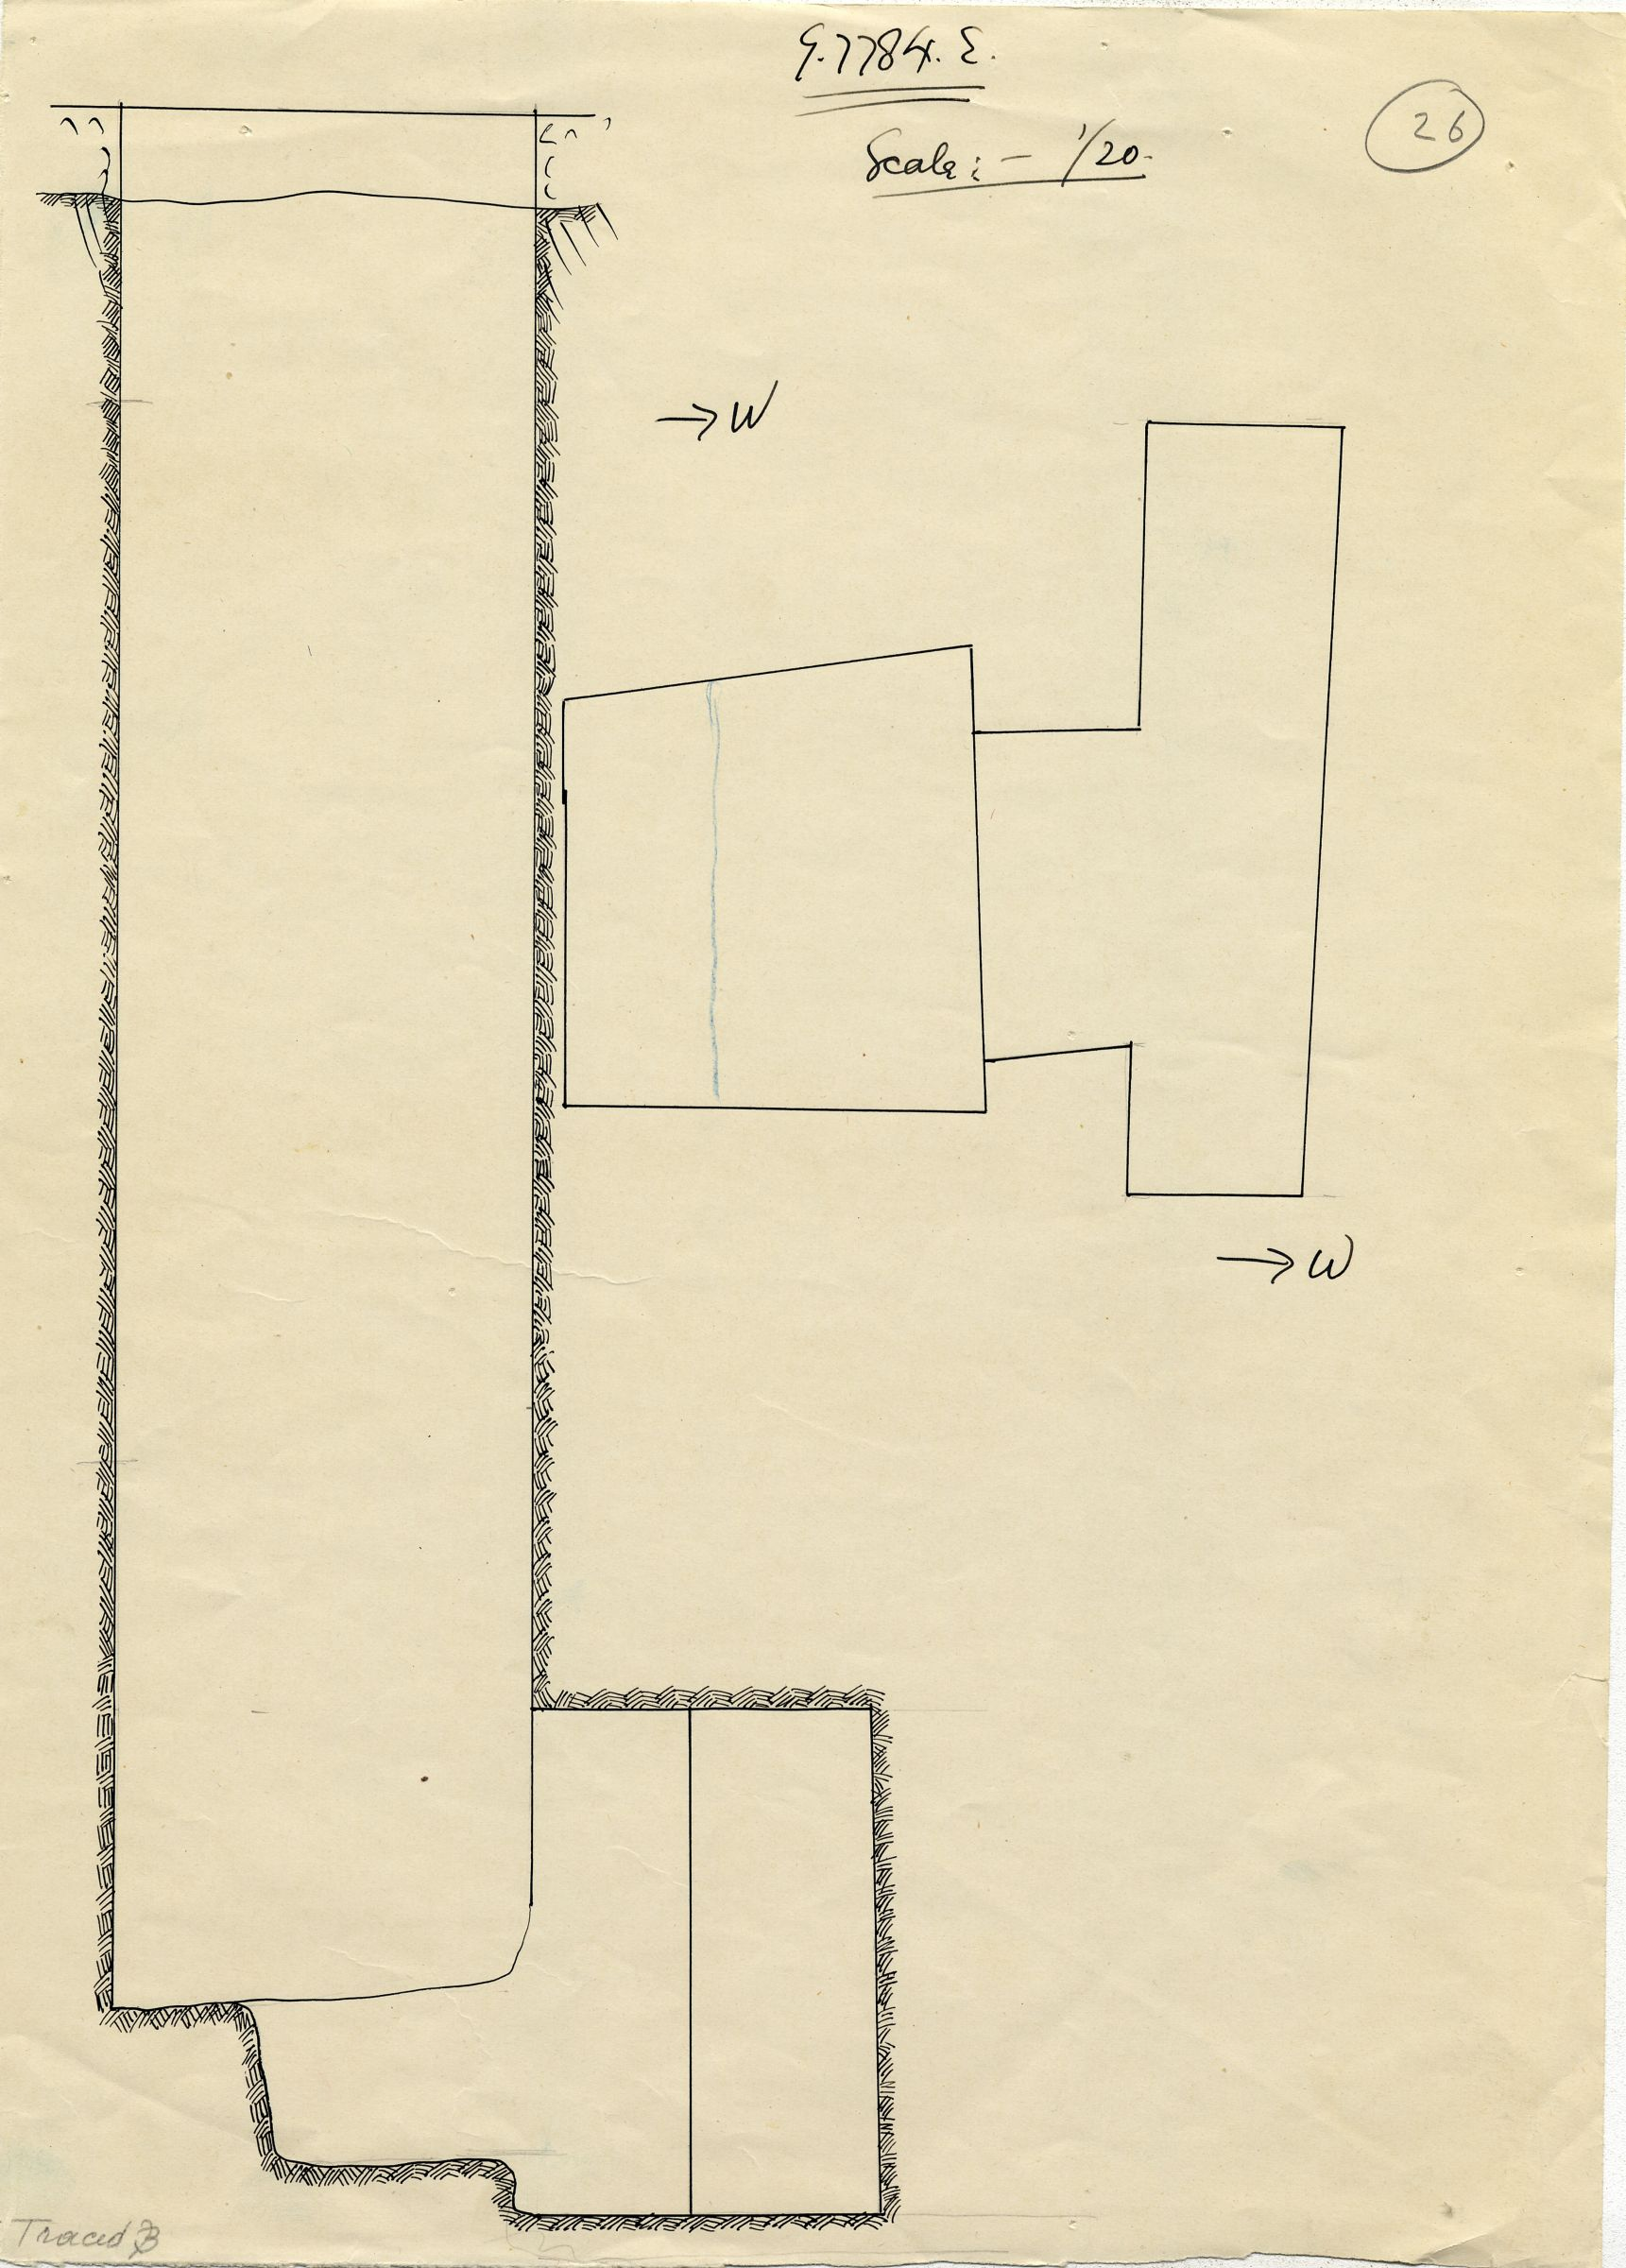 Maps and plans: G 7784, Shaft E